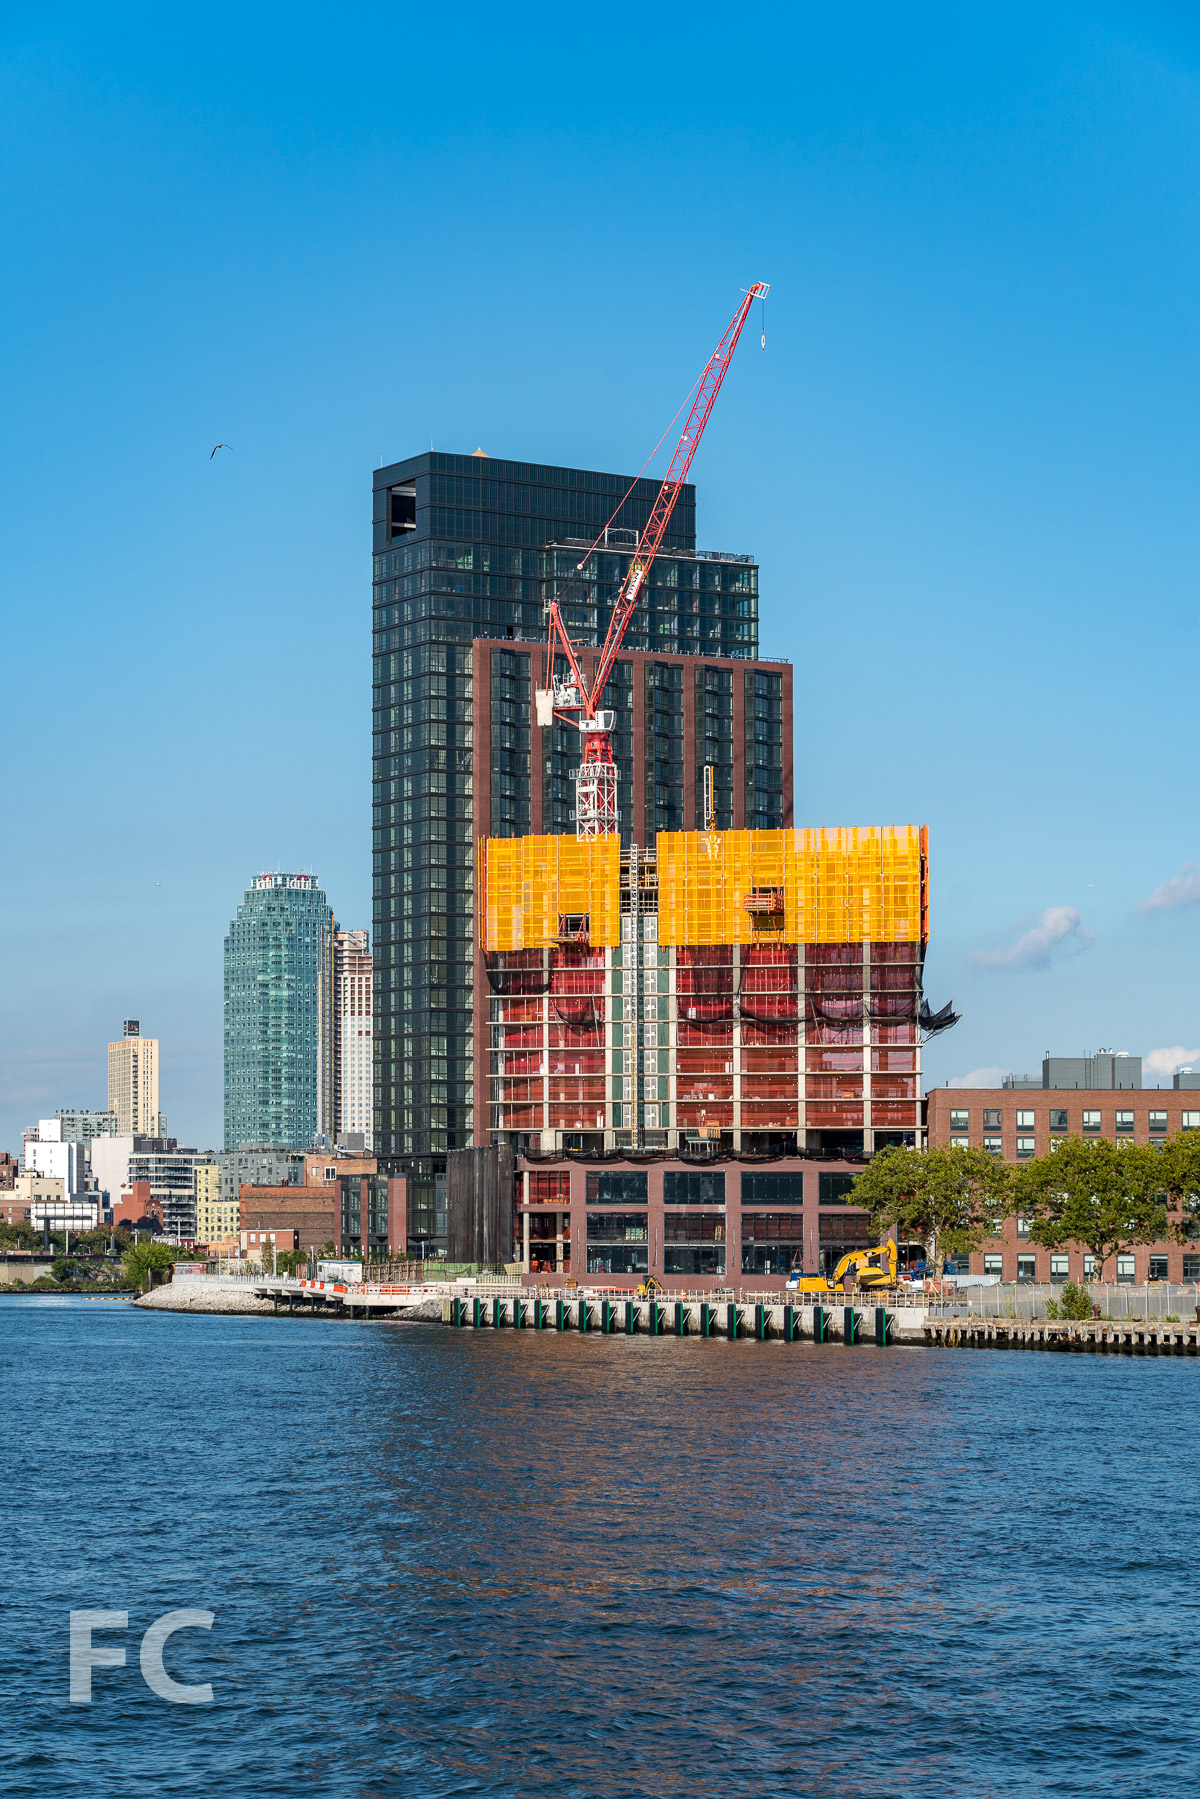 Northwest corner of 37 Blue Slip (background) and 41 Blue Slip (foreground) from the East River.